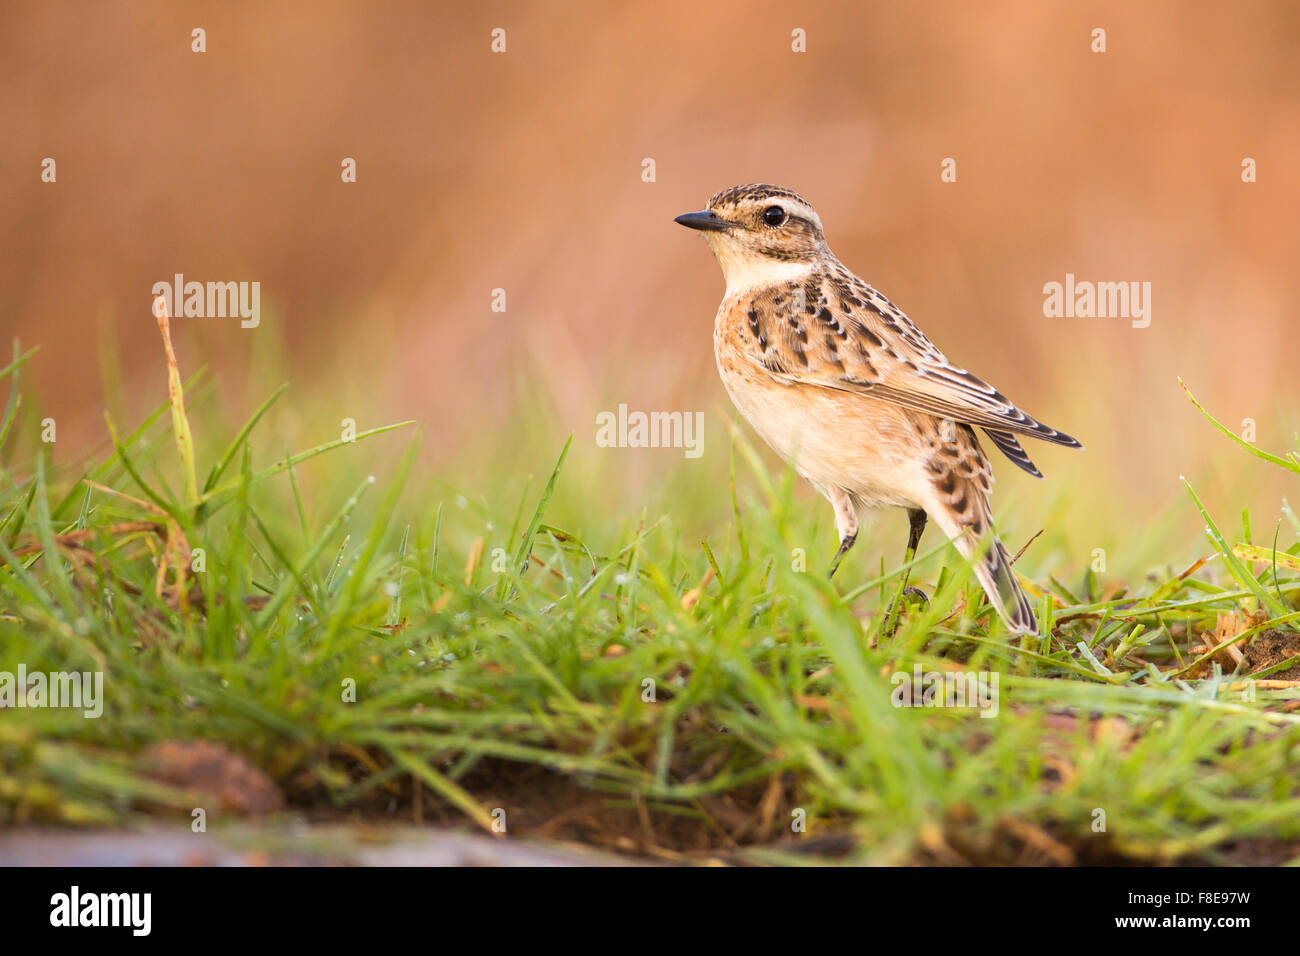 Female Whinchat (Saxicola rubetra) a small migratory passerine bird that breeds in Europe and western Asia and winters - Stock Image